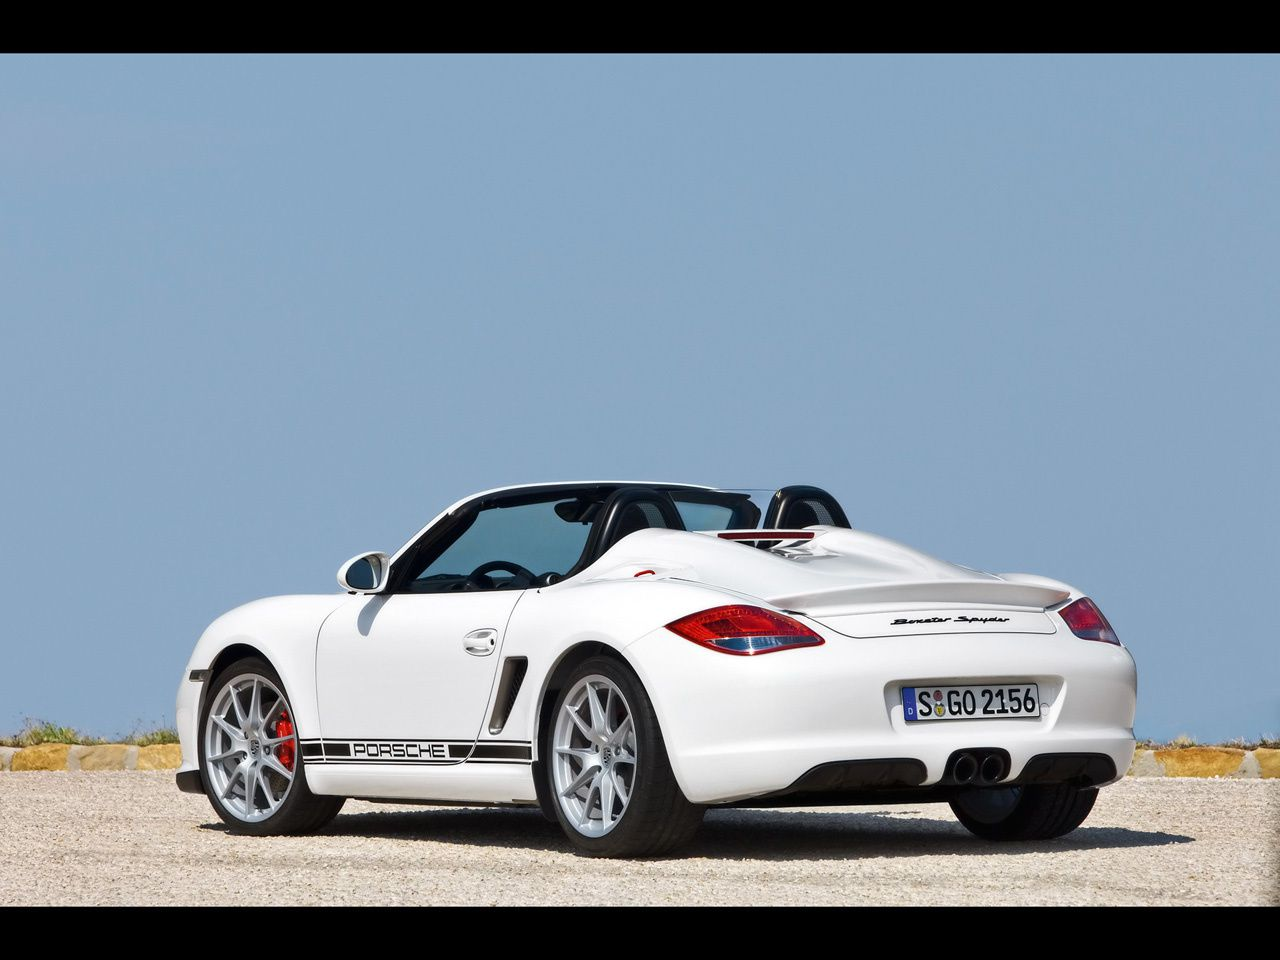 2010 Porsche Boxster Spyder Dark Cars Wallpapers